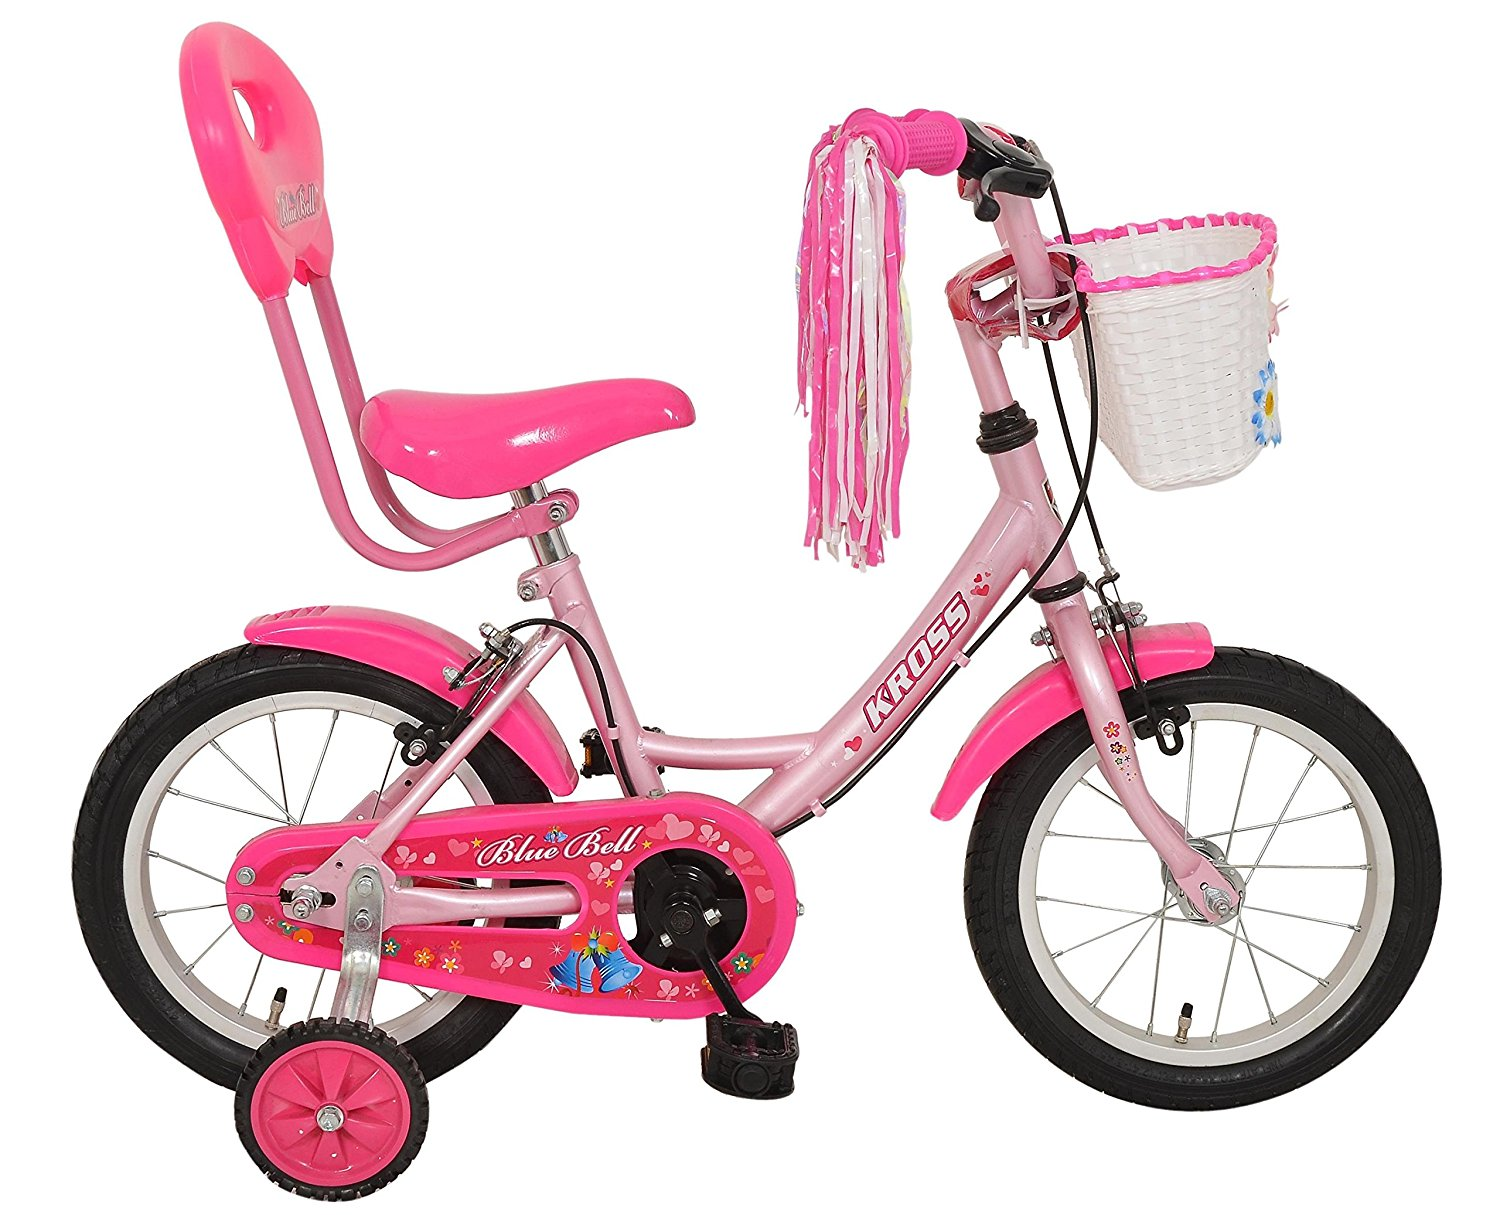 Kross Blue Bell 14t Bicycle Pink Kid Toy Online Shop